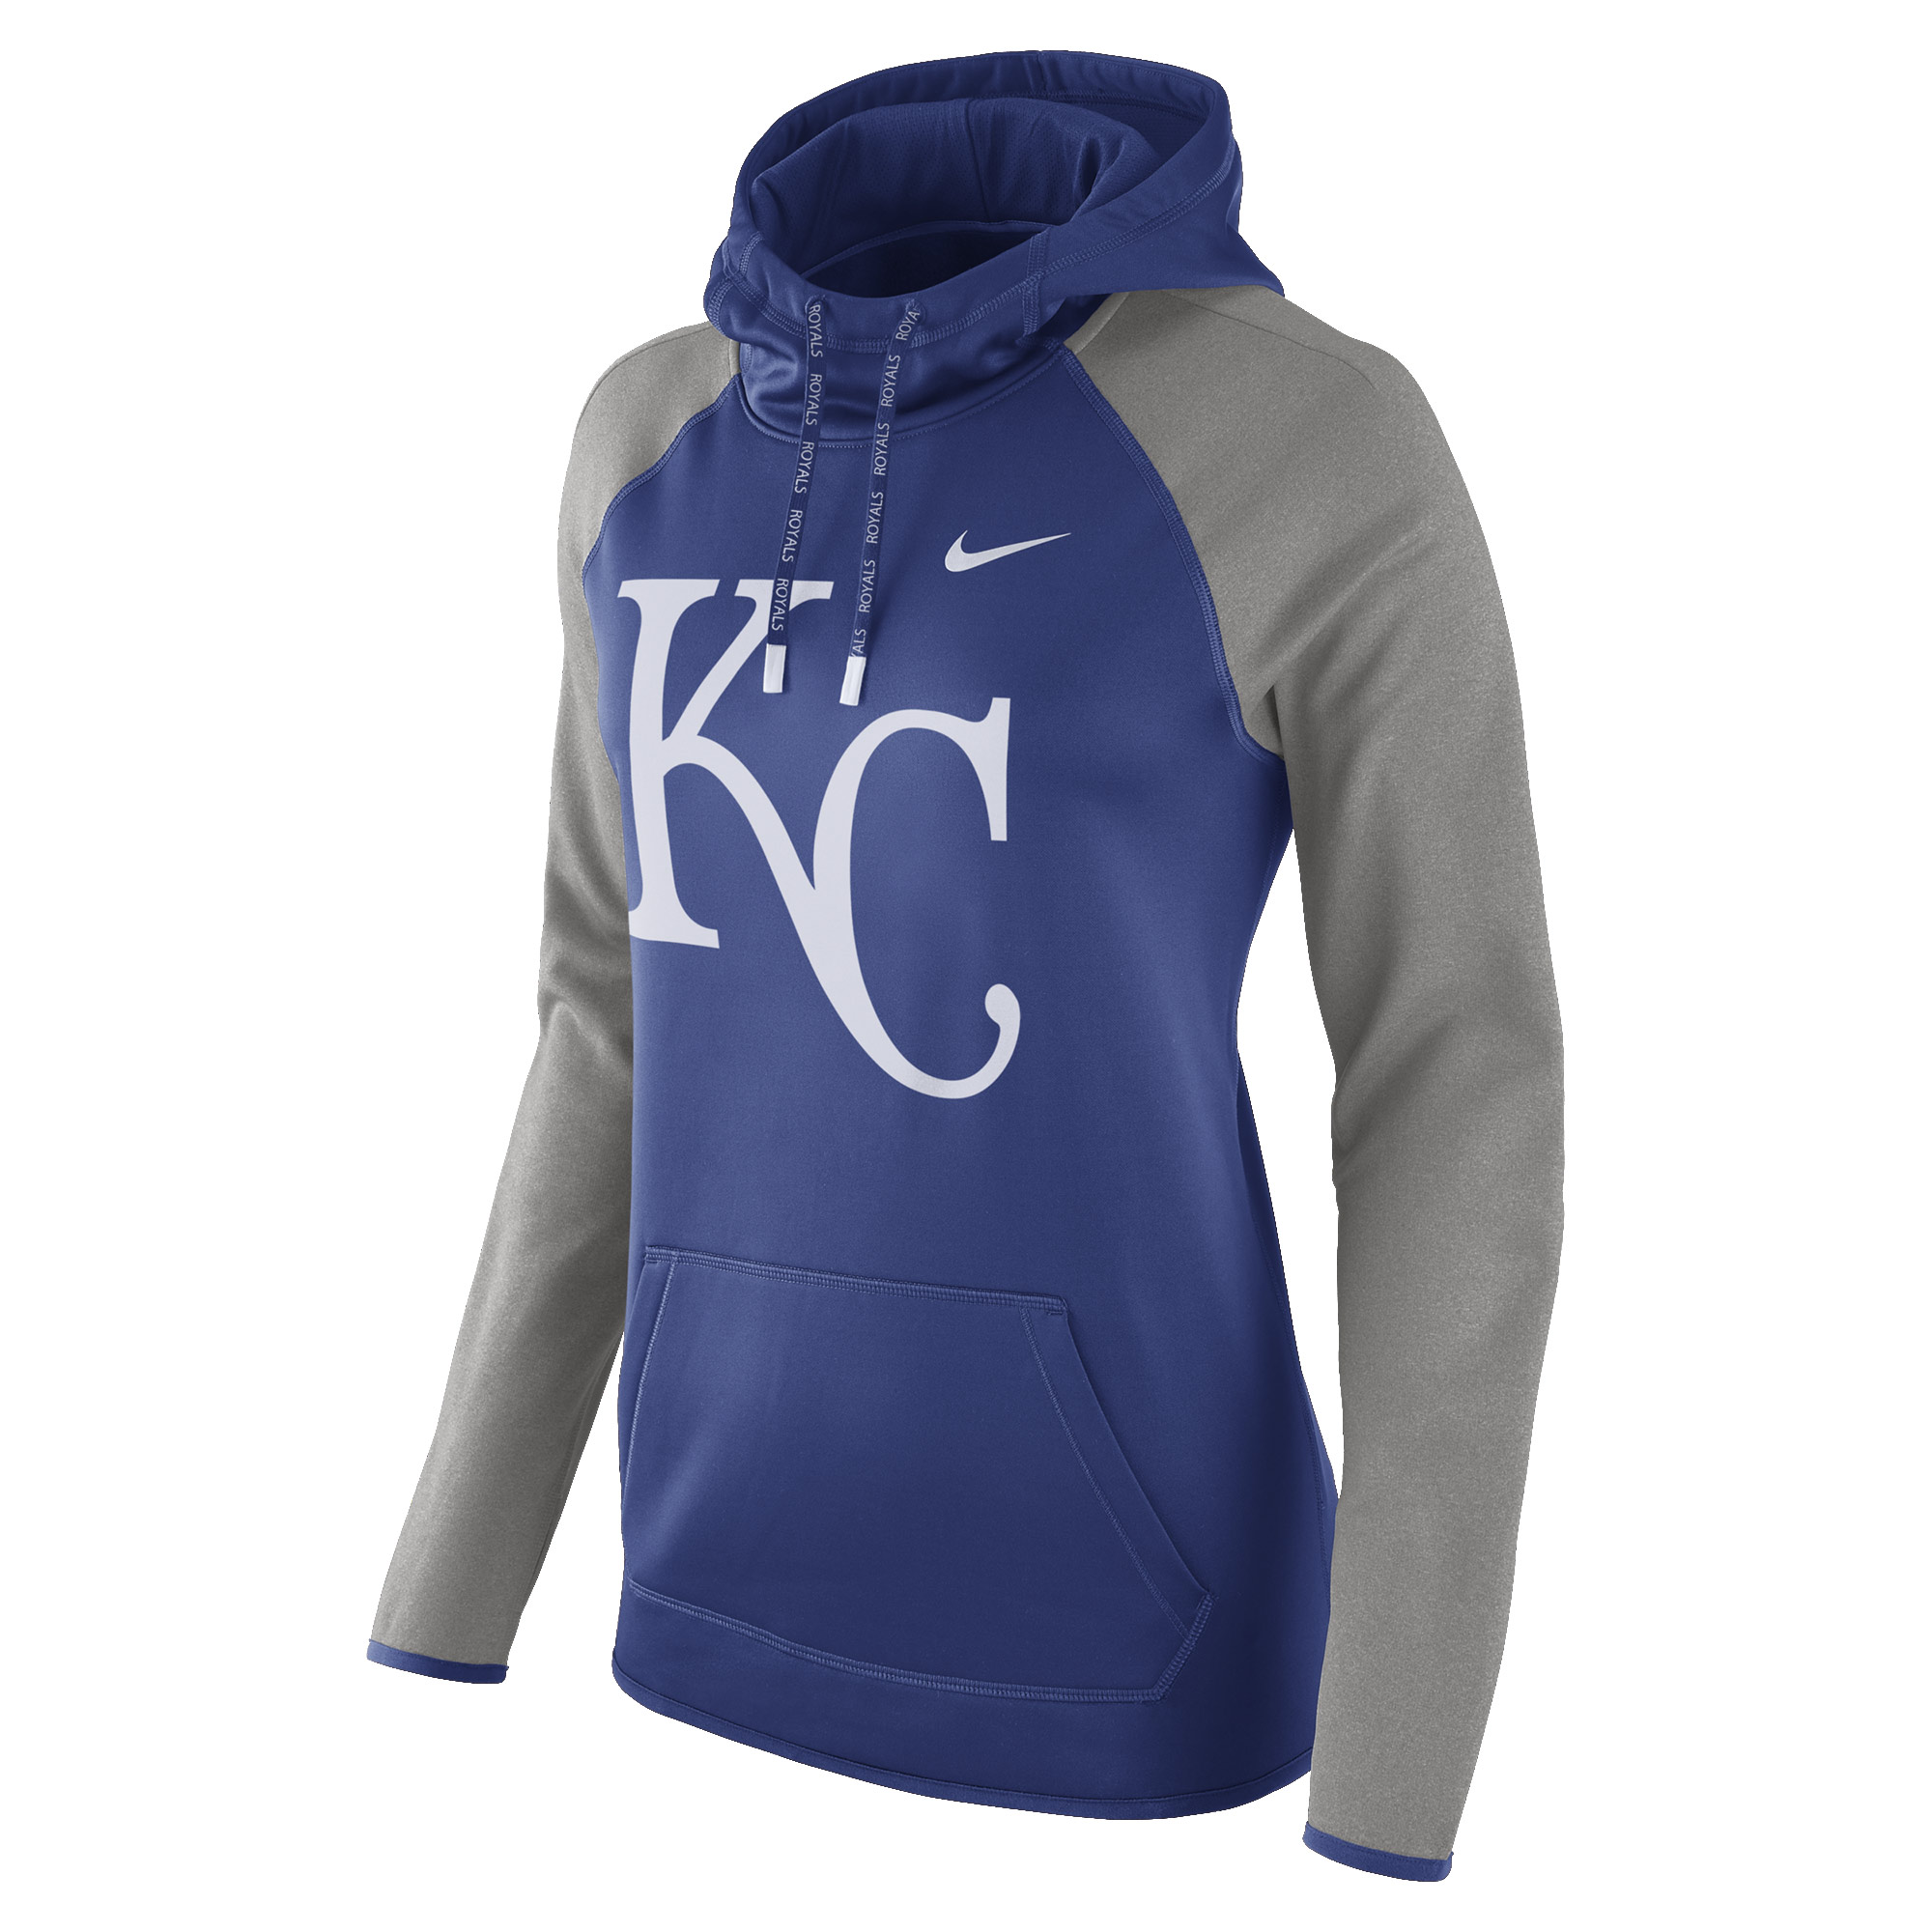 64d6a637deb Kansas City Royals Nike Women s Performance Pullover Hoodie -  Royal Heathered Gray - XXL